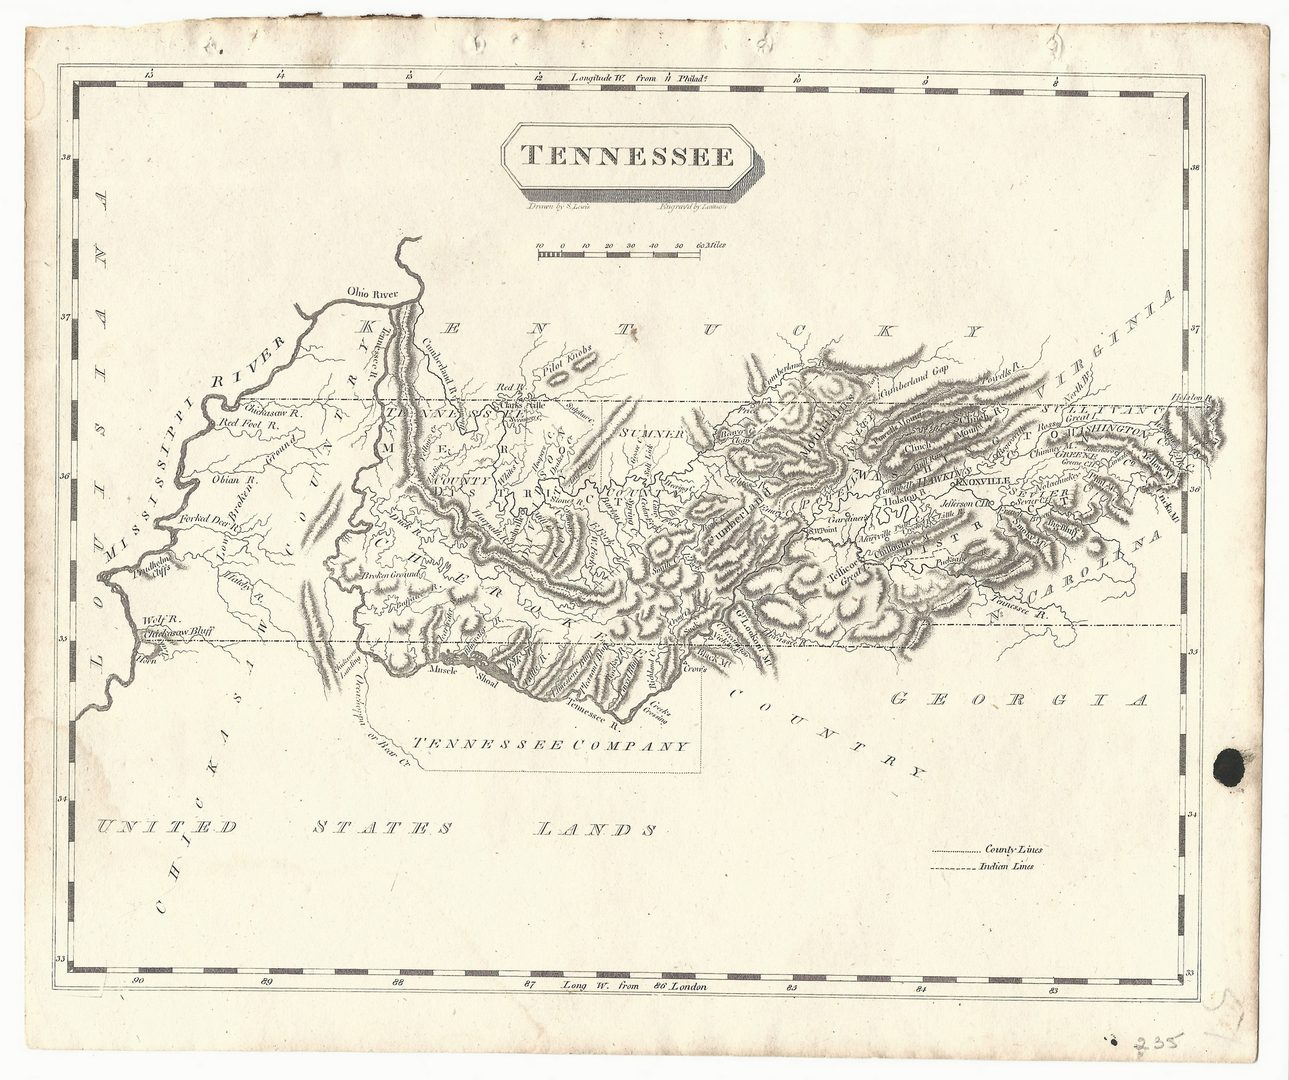 Lot 101: Tennessee Map, Samuel Lewis & Alexander Lawson, 1804